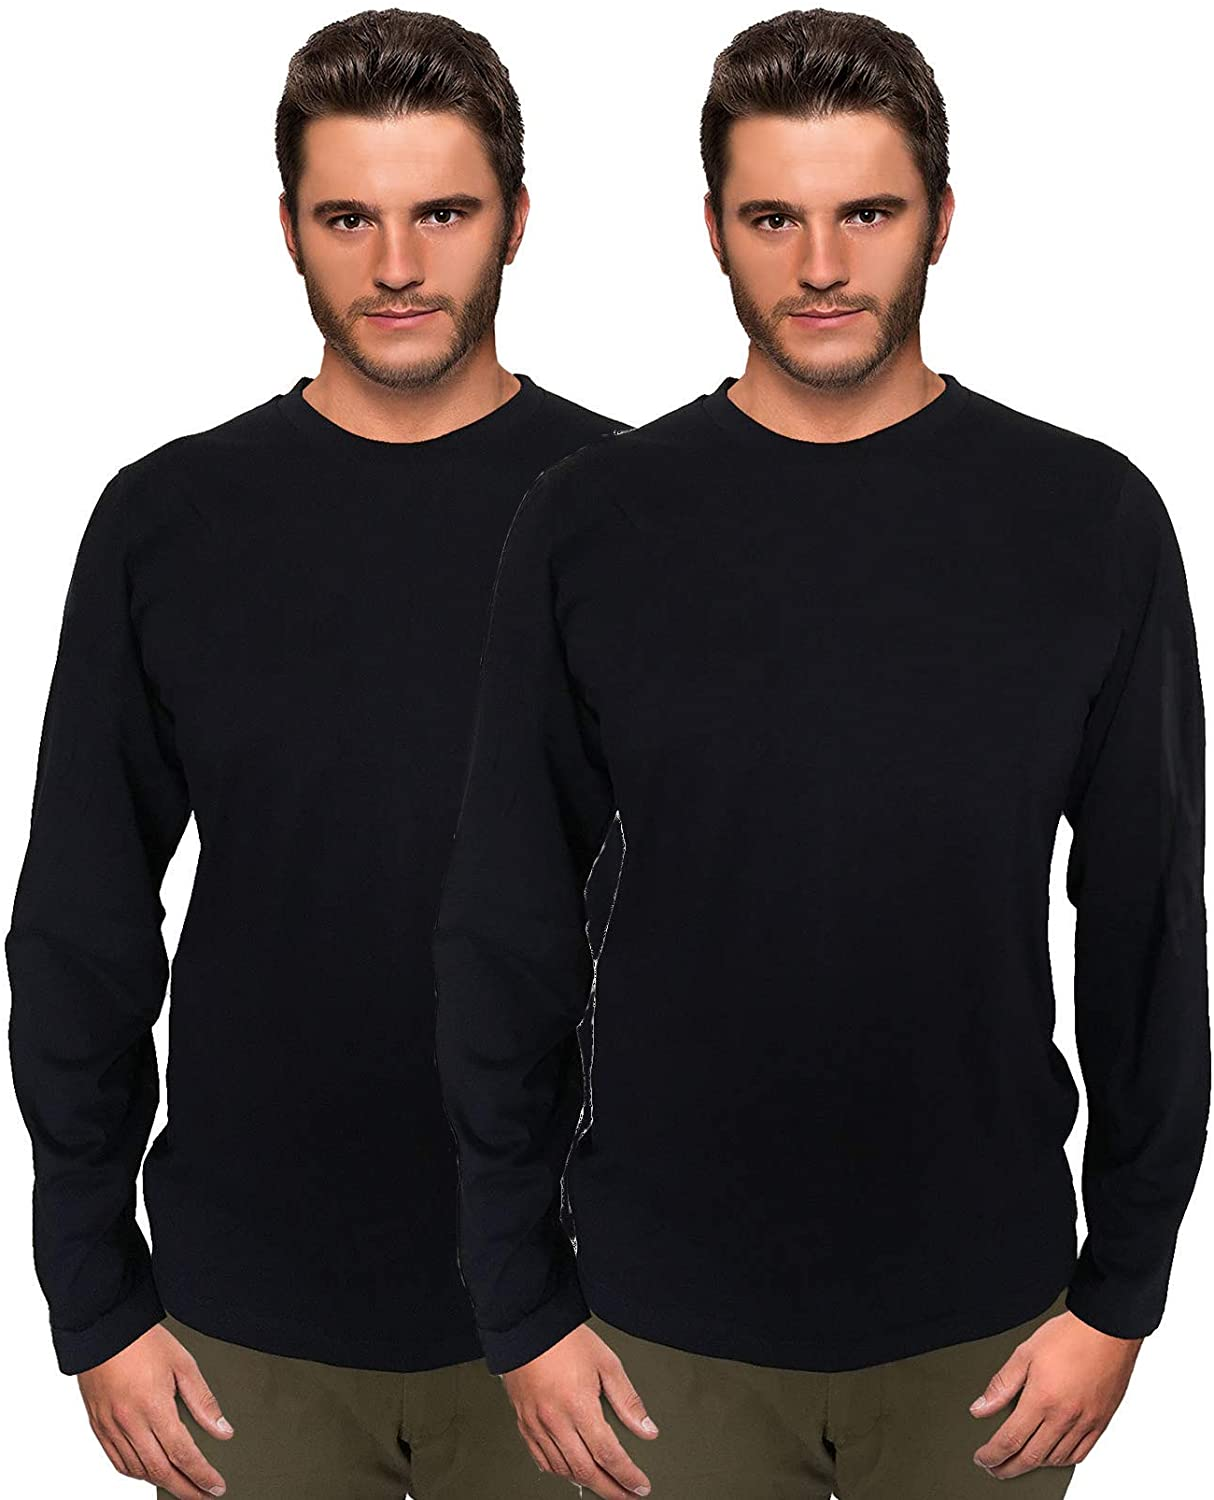 Joli and Bonito Mens Full Sleeves T-Shirt - Pack of 2 - Navy Blue, Medium